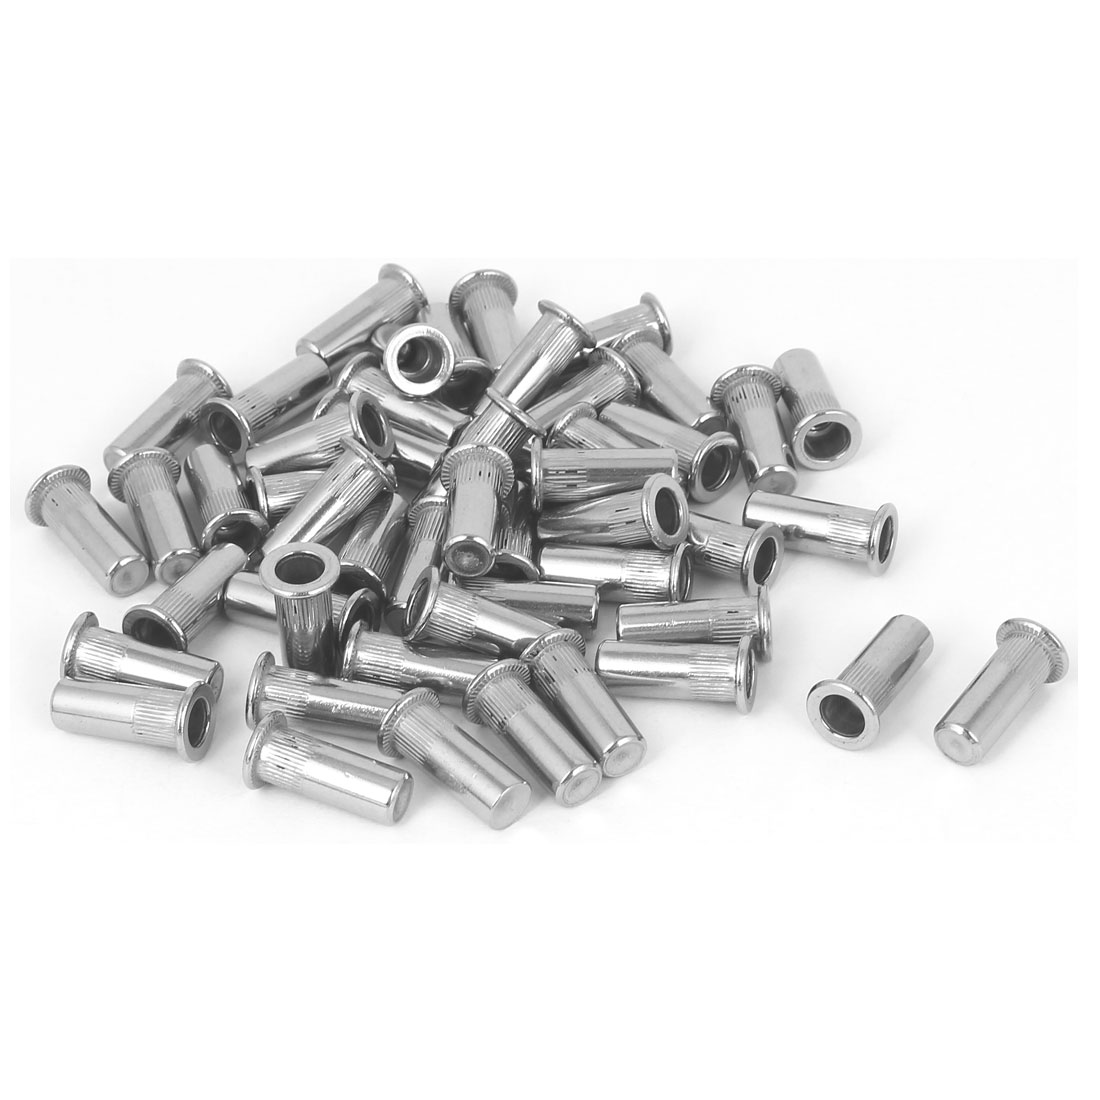 M5x18.5mm 304 Stainless Steel Straight Knurled Closed End Rivet Nut Fastener 50pcs